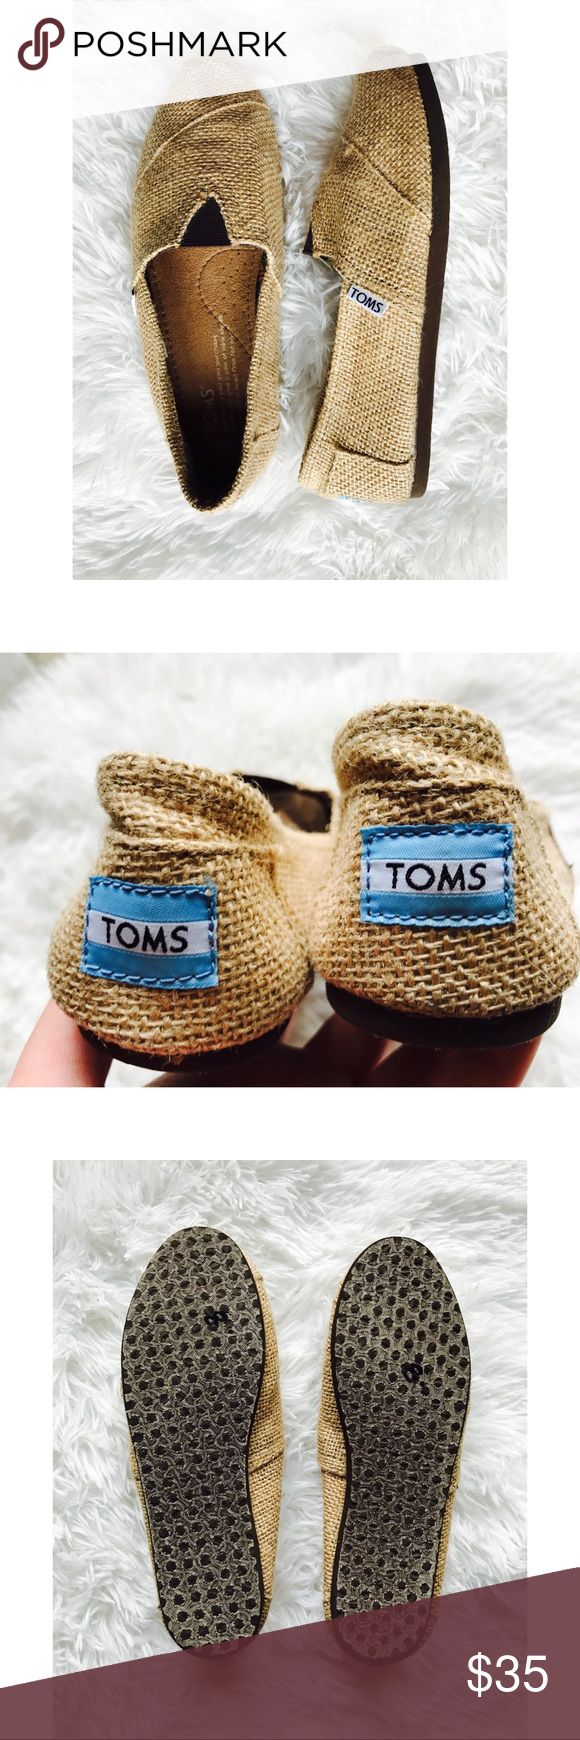 Burlap TOMS Genuine burlap TOMS   Gently used condition   Only wear shown on shoe is on the bottom sole   Very comfortable and lightweight   Very cute with some denim and a t-shirt for the summer months   Open to offers ✨ Toms Shoes Flats & Loafers